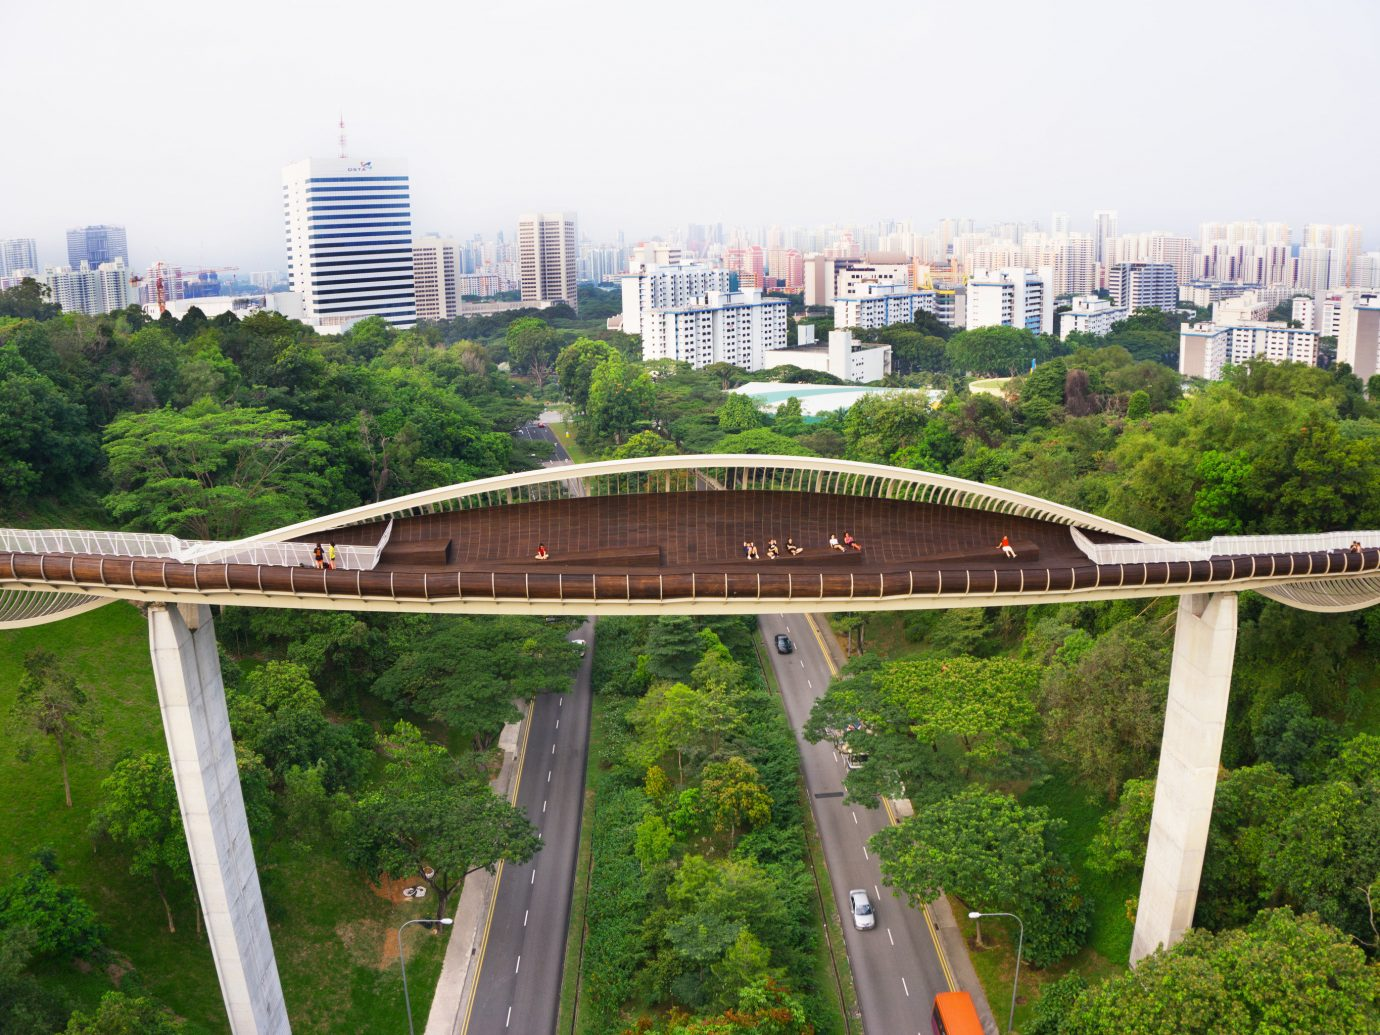 Offbeat Singapore Trip Ideas tree outdoor sky bridge overpass transport landmark urban area City River arch bridge viaduct skyway nonbuilding structure cityscape traveling cable stayed bridge suspension bridge